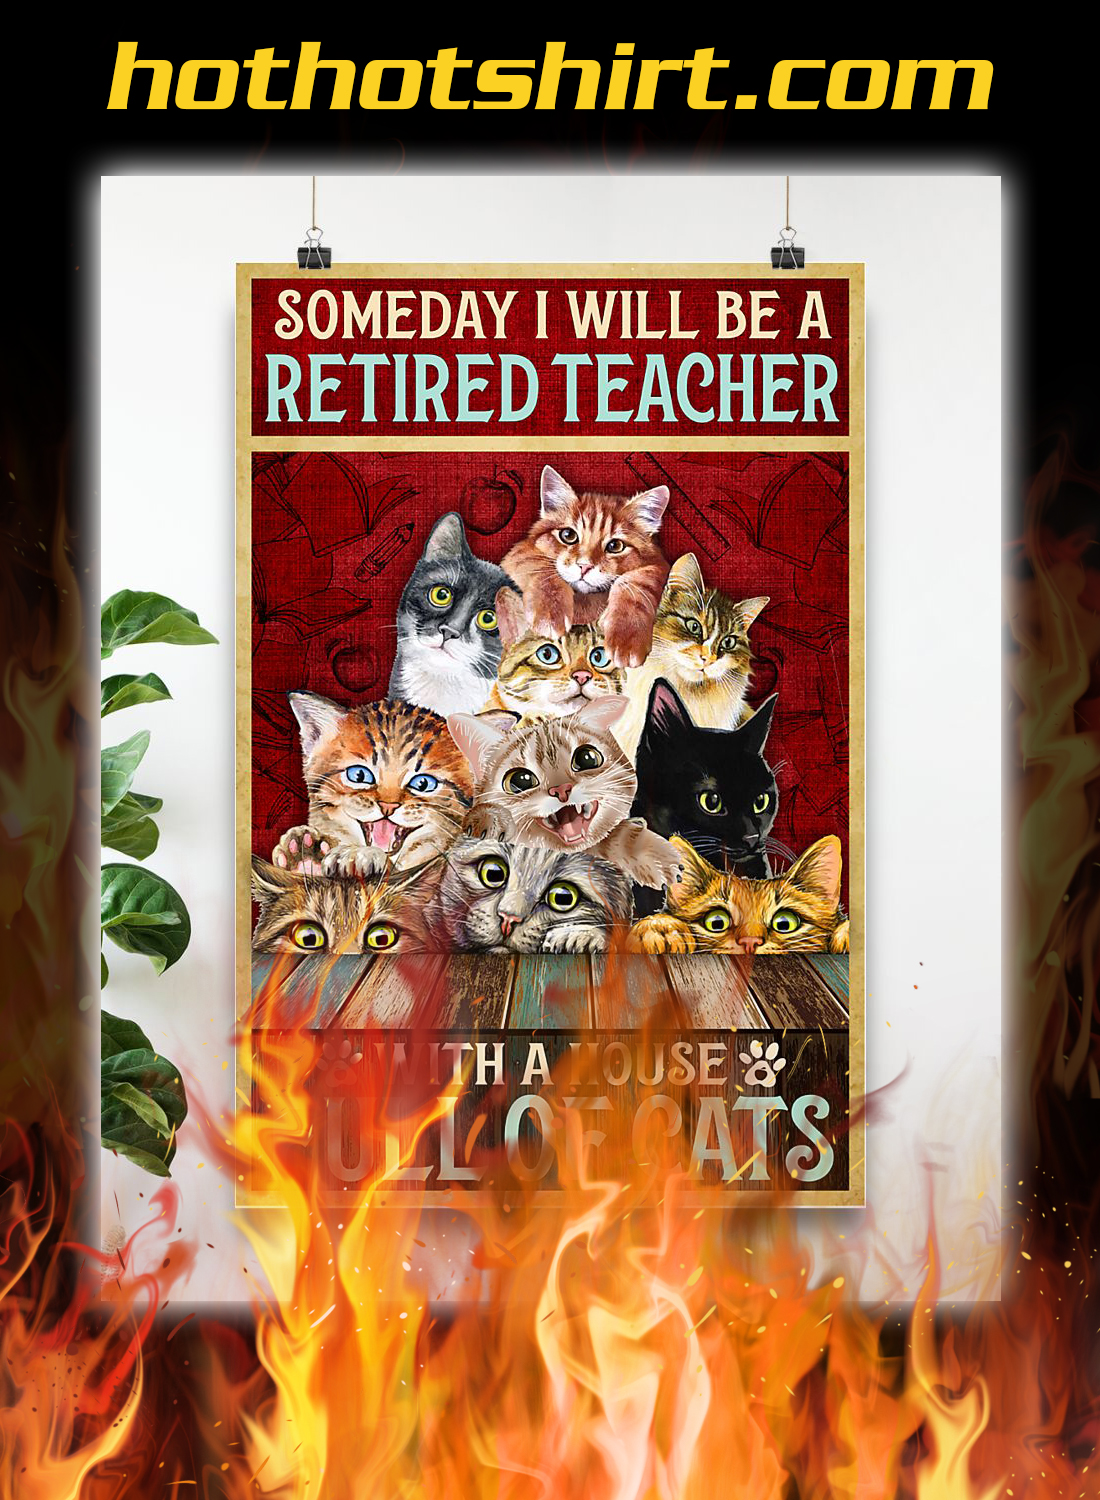 Someday i will be a retired teacher with a house full of cats poster 3